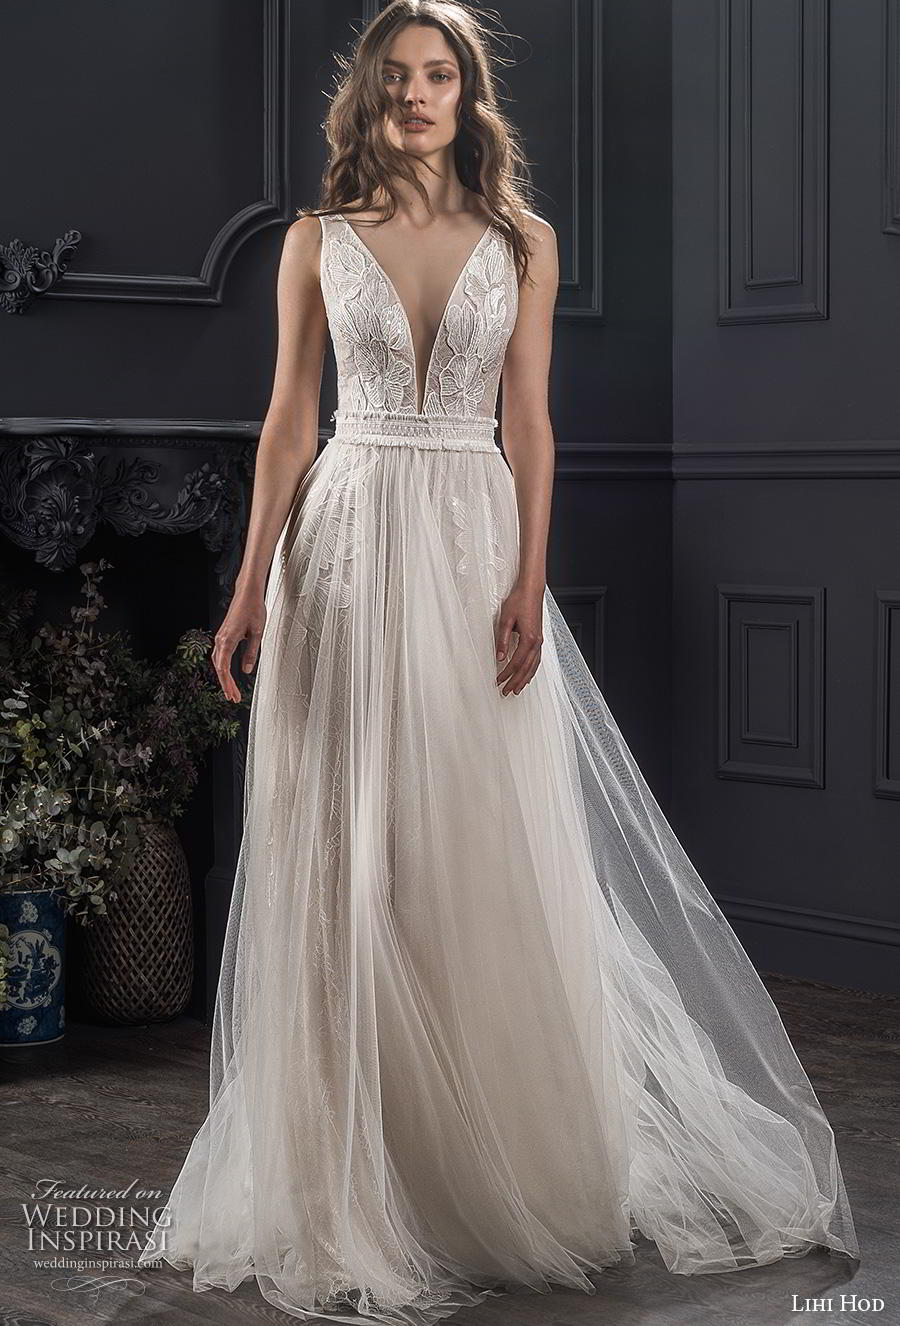 lihi hod spring 2020 bridal sleeveless deep v neck heavily embellished bodice romantic soft a  line wedding dress (10) mv